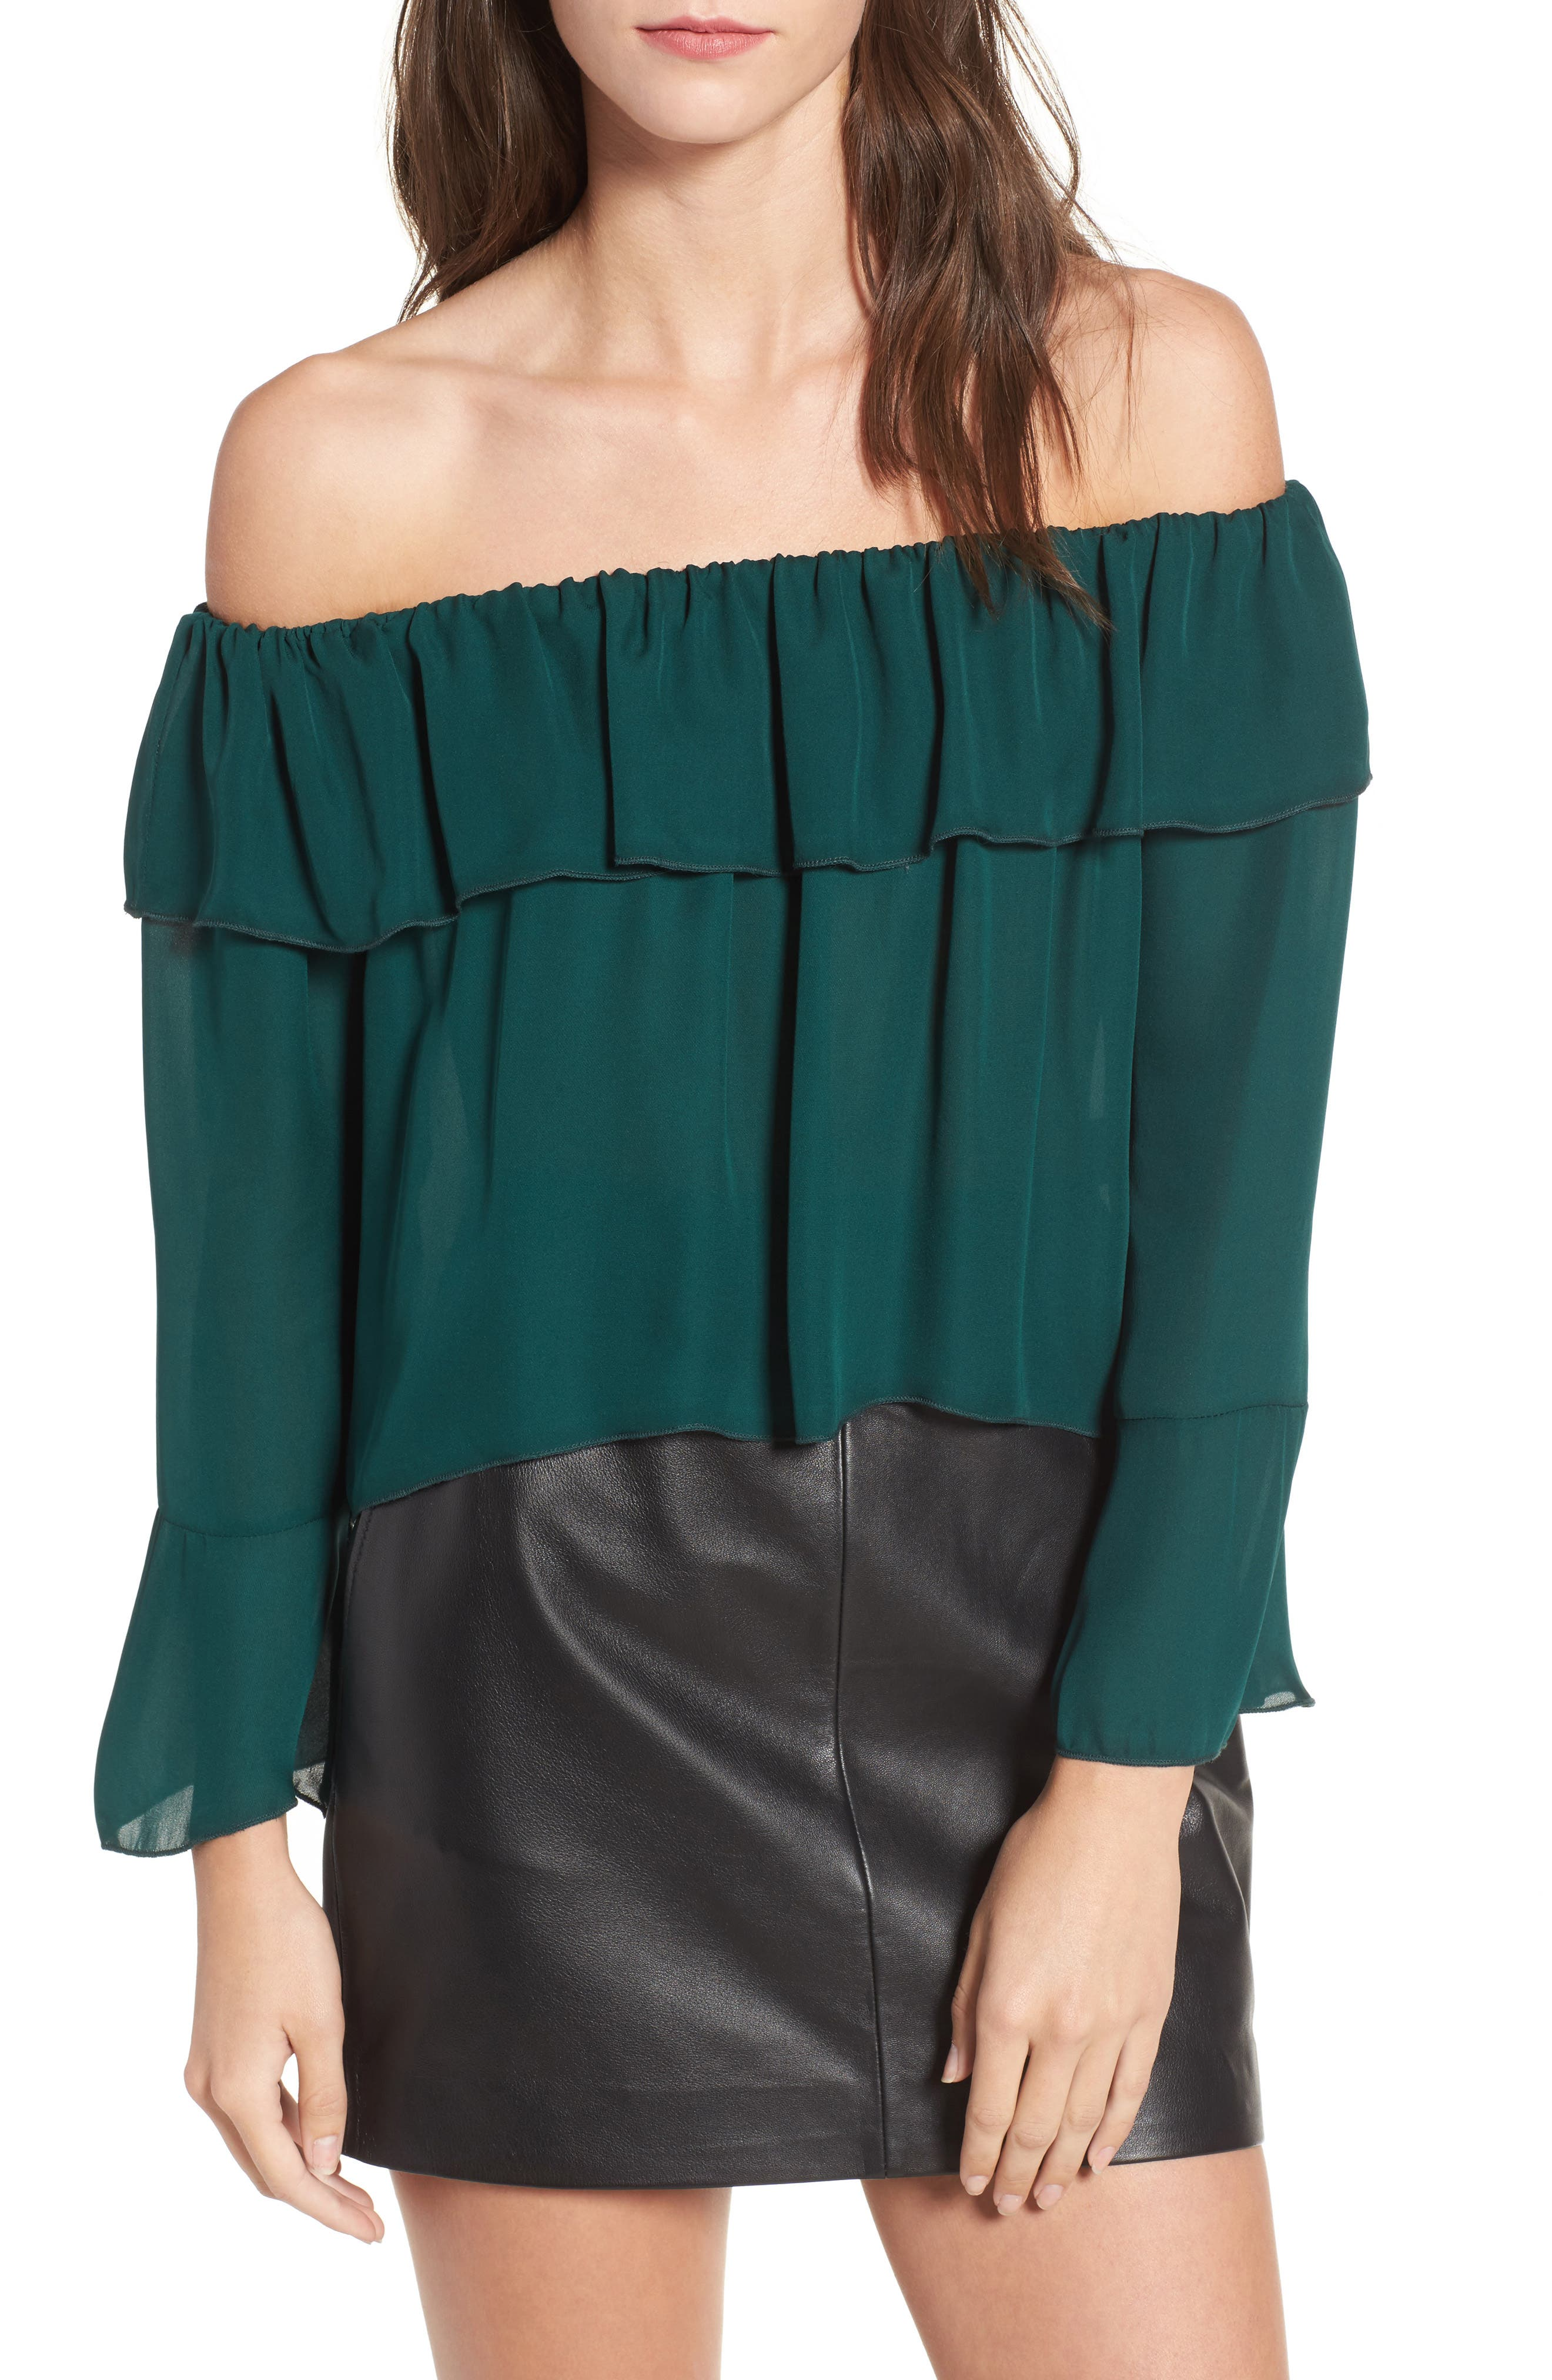 Kennedy Off the Shoulder Blouse,                             Main thumbnail 1, color,                             Emerald Green